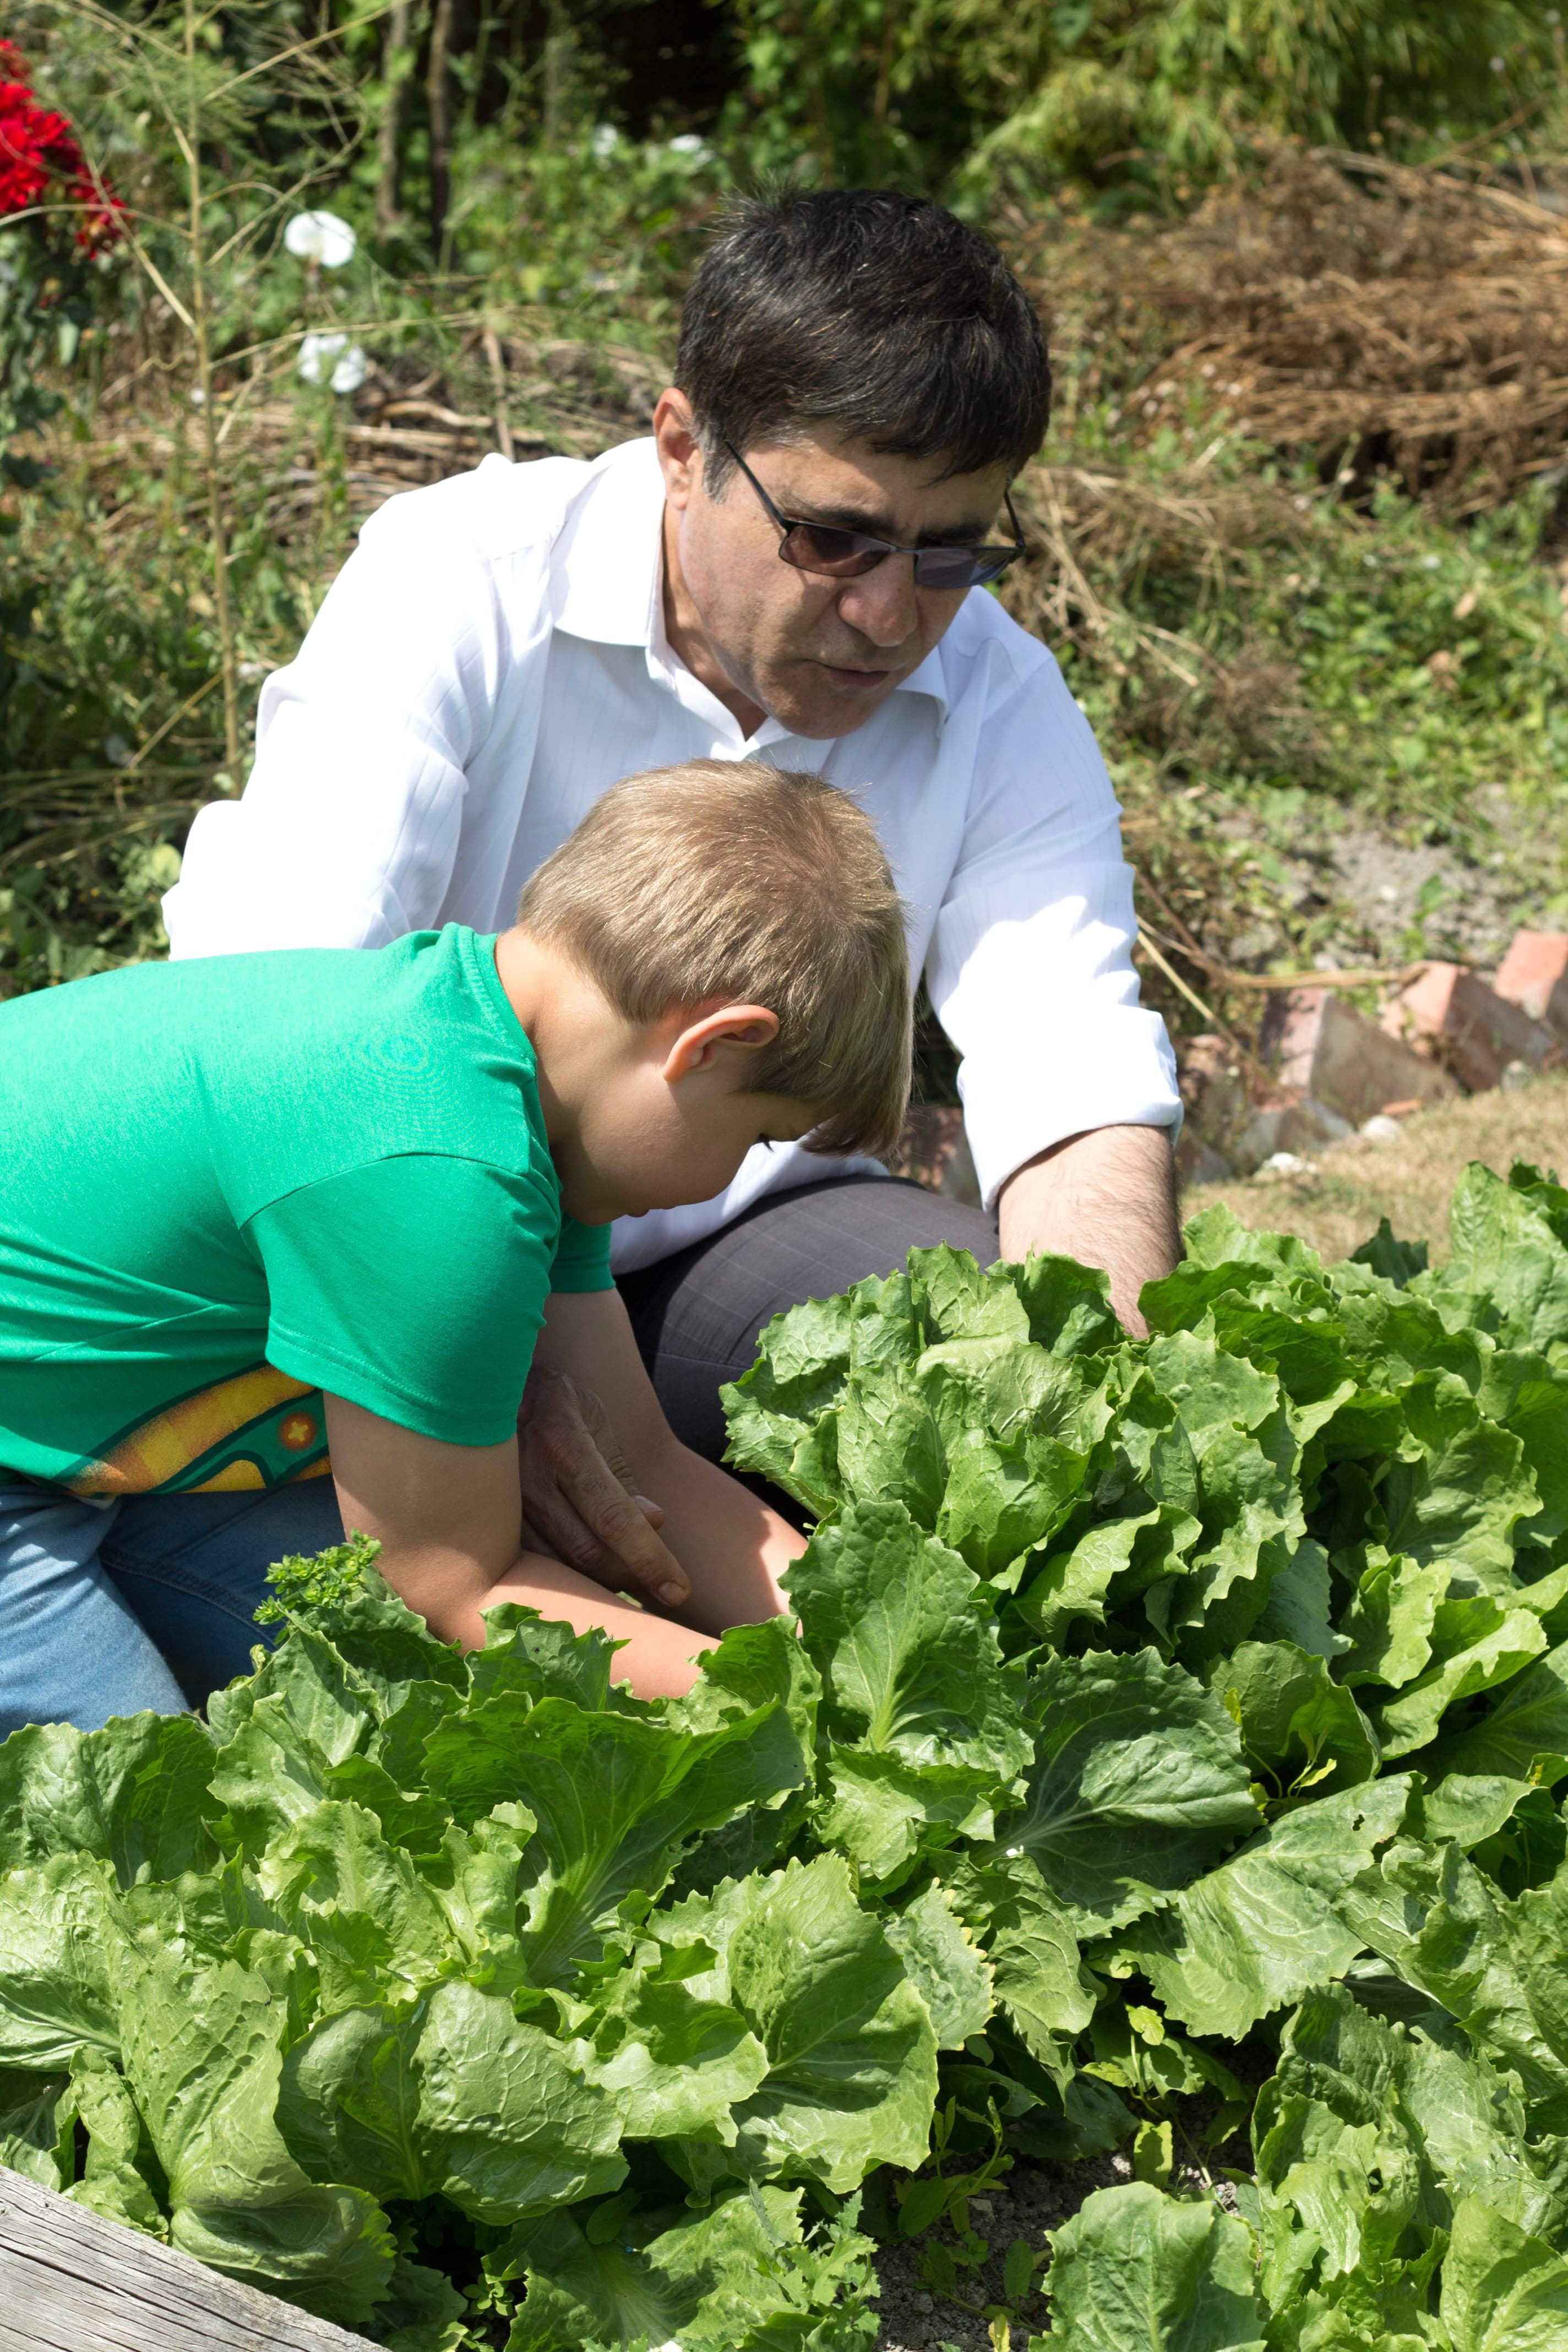 My son and neighbour picking the escarole